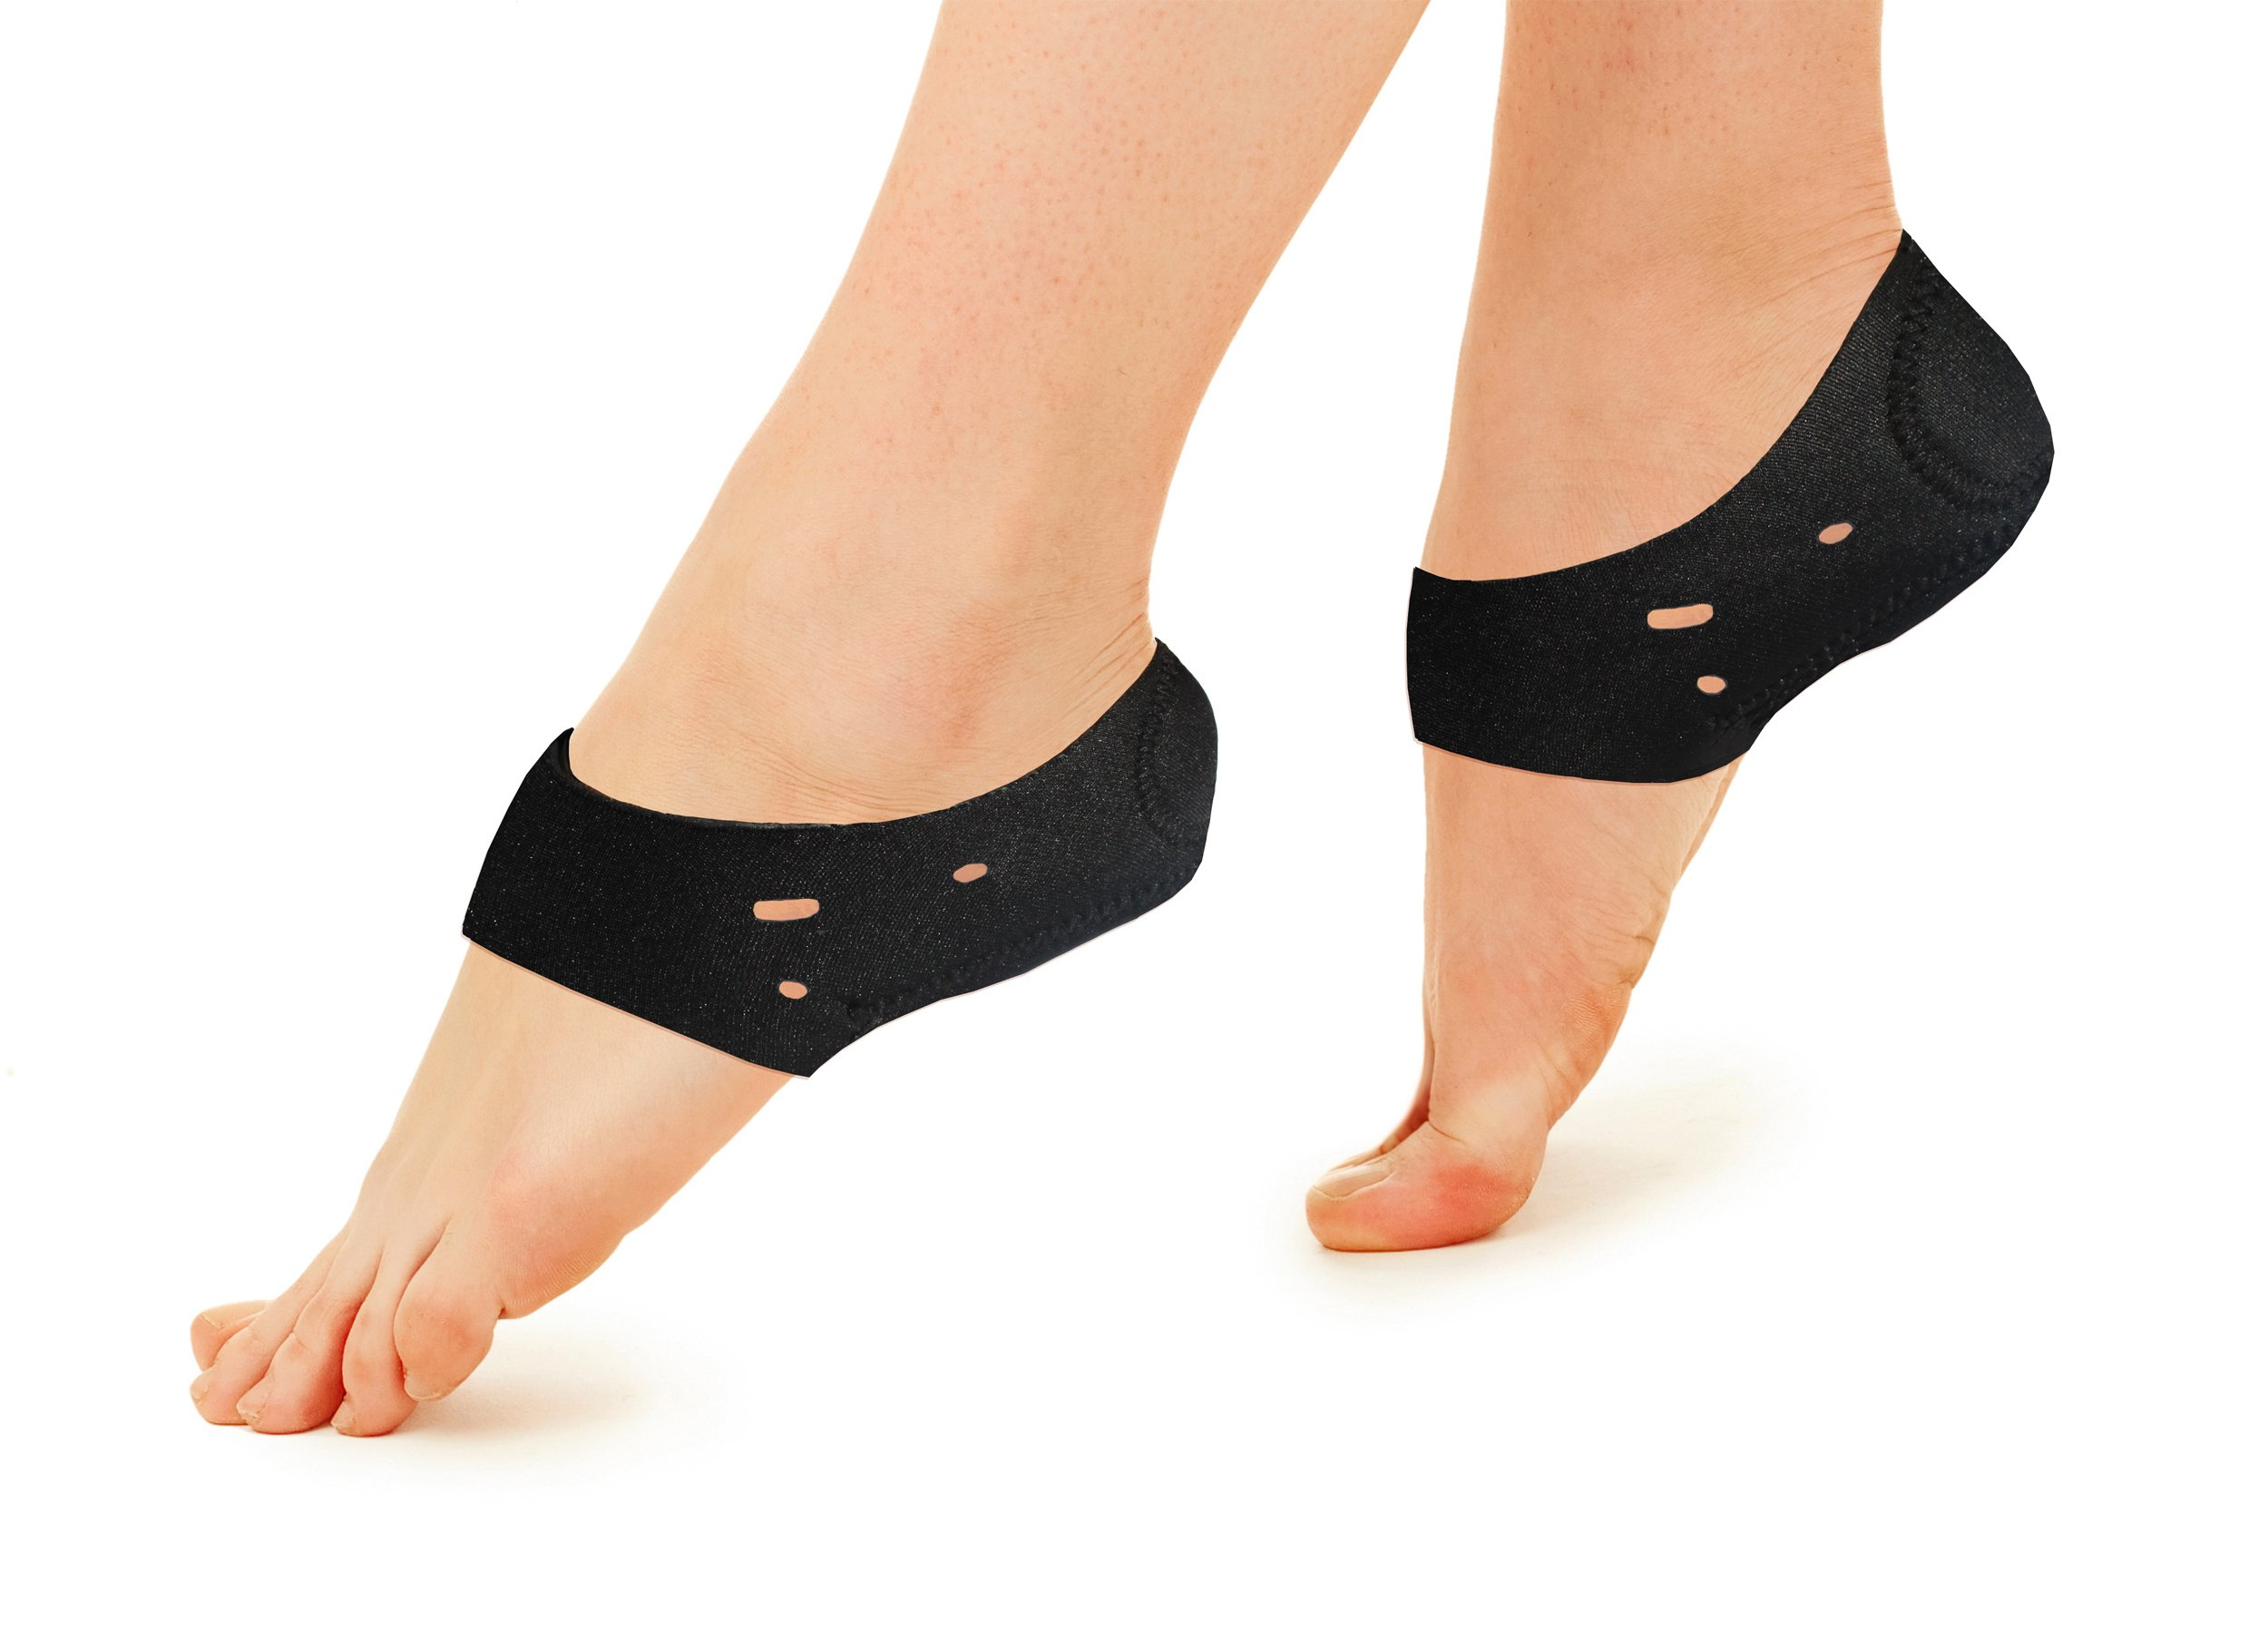 Beautyko Shock Absorbing Plantar Fasciitis Therapy Wraps, 90 Count